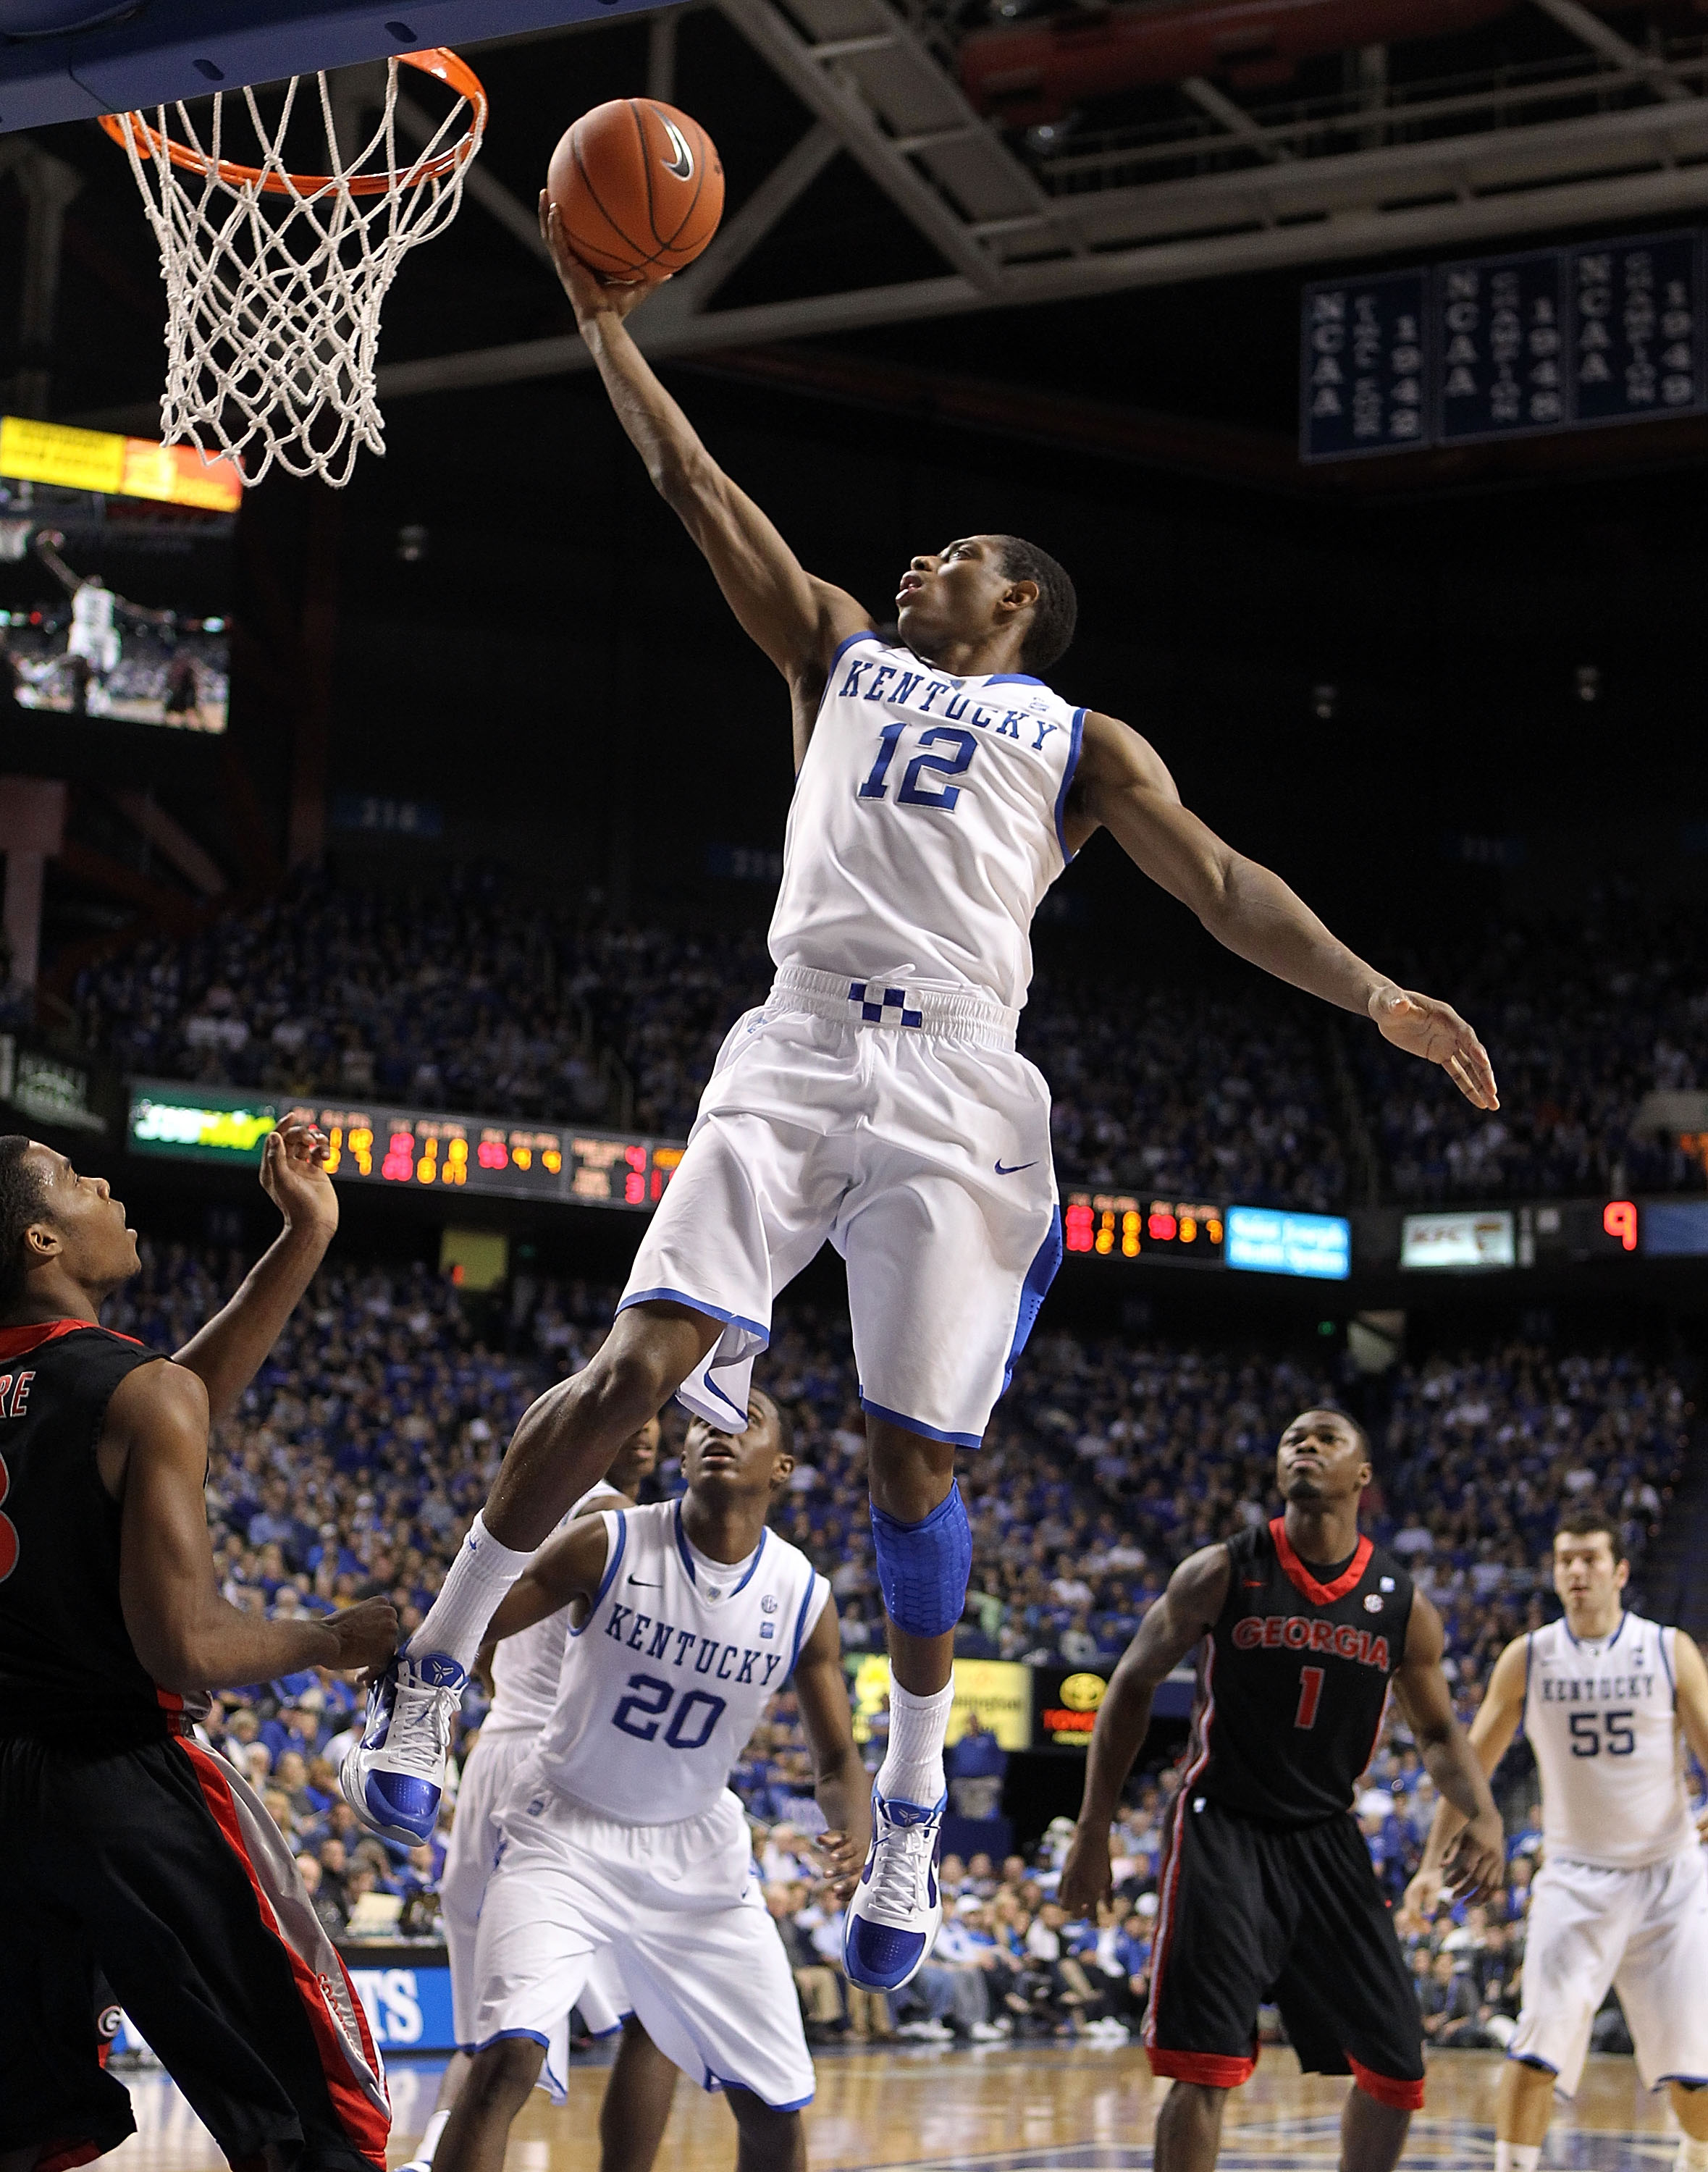 LEXINGTON, KY - JANUARY 29:  Brandon Knight #12 of the Kentucky Wildcats shoots the ball during the SEC game against the Georgia Bulldogs at Rupp Arena on January 29, 2011 in Lexington, Kentucky. Kentucky won 66-60.  (Photo by Andy Lyons/Getty Images)